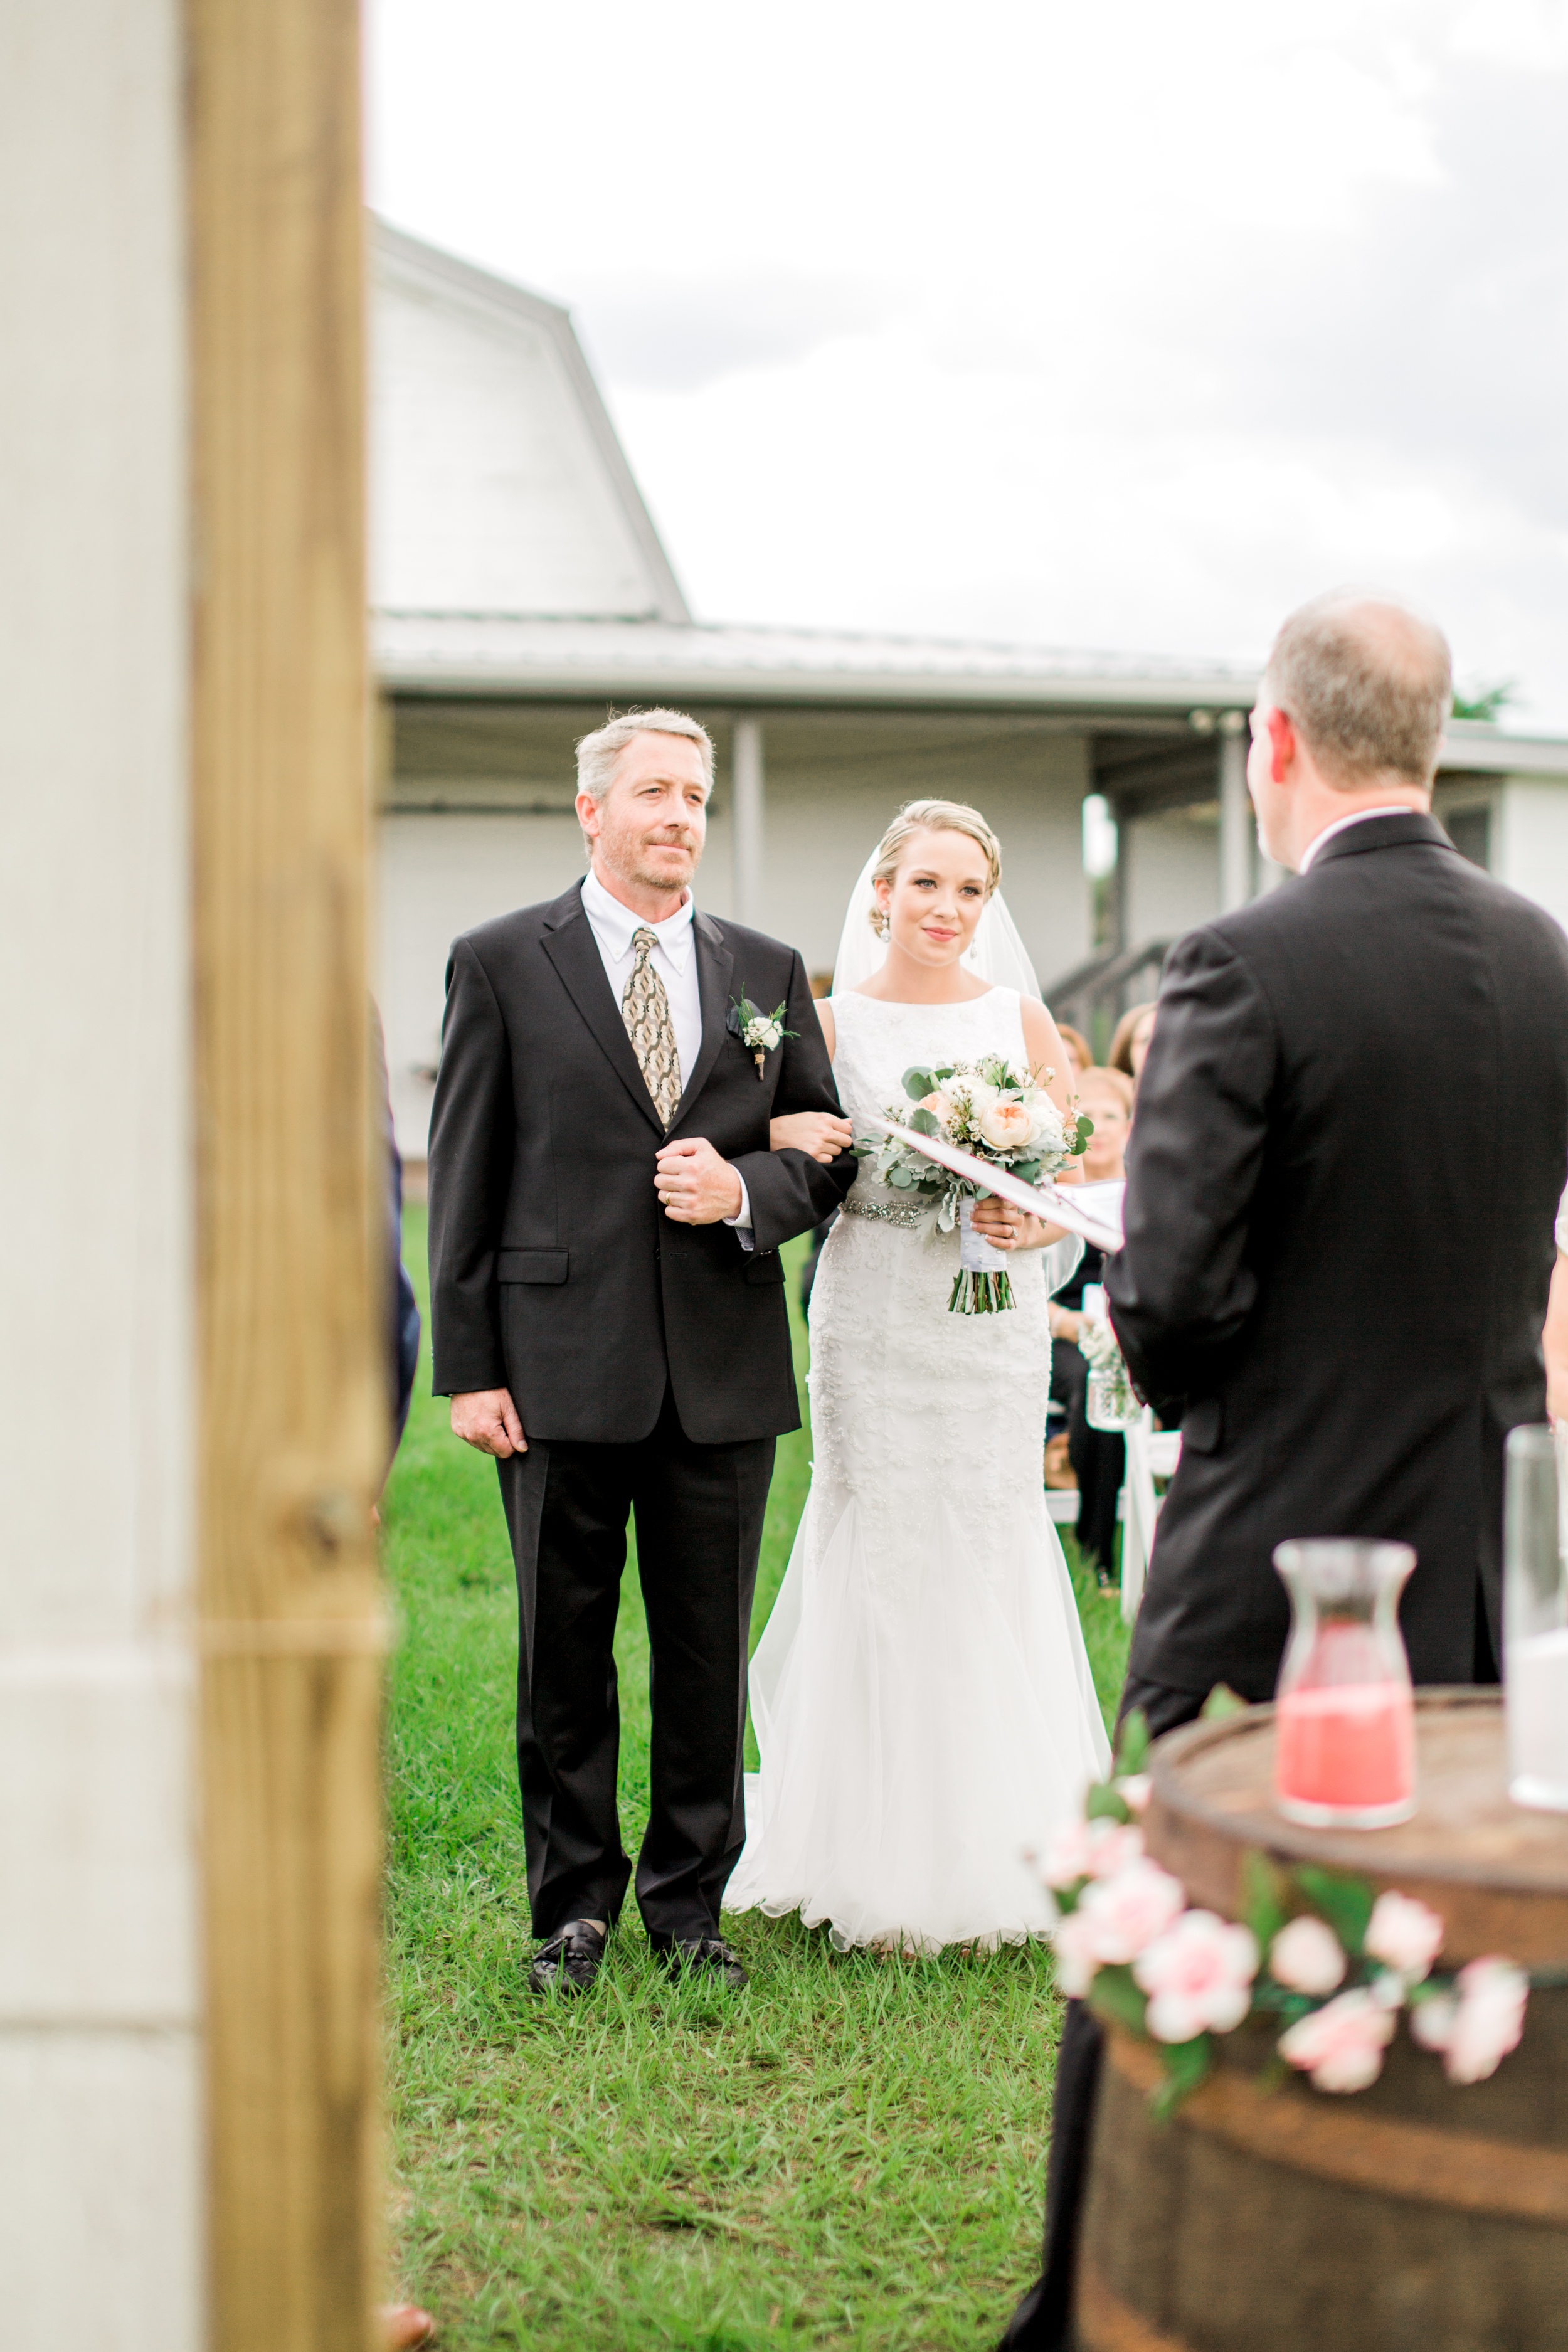 Sterling stables, brevard county FL wedding bride and groom ceremony photo